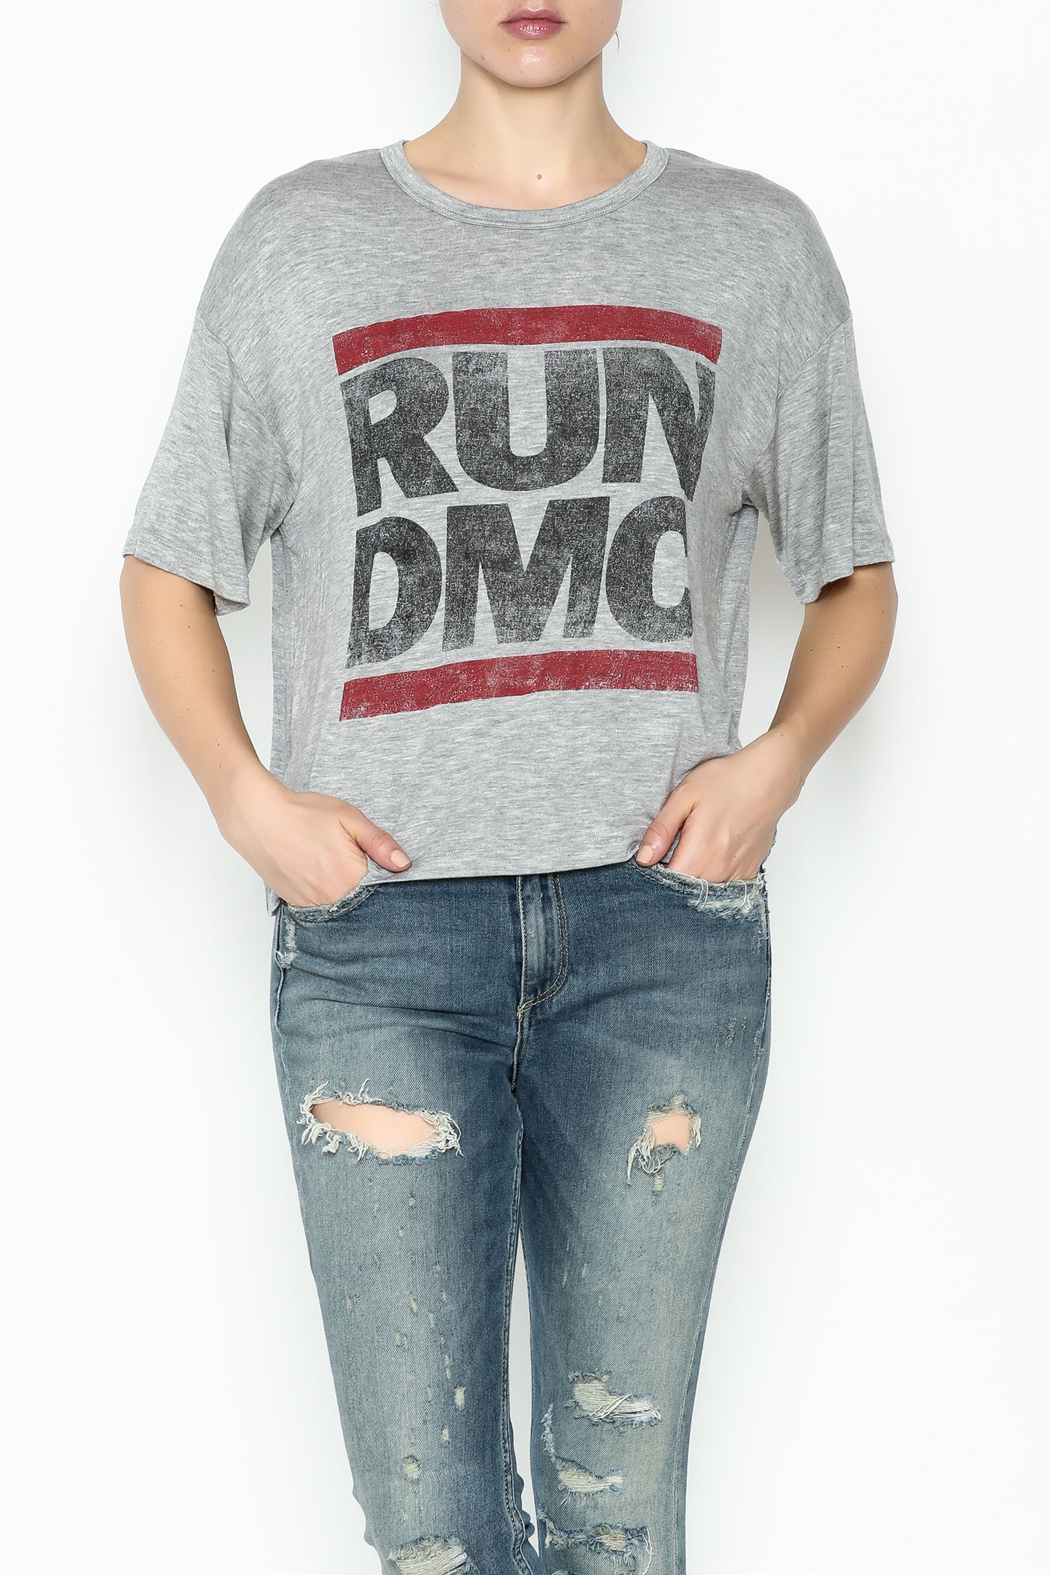 daydreamer run dmc band tee from miami by nurbana 305. Black Bedroom Furniture Sets. Home Design Ideas